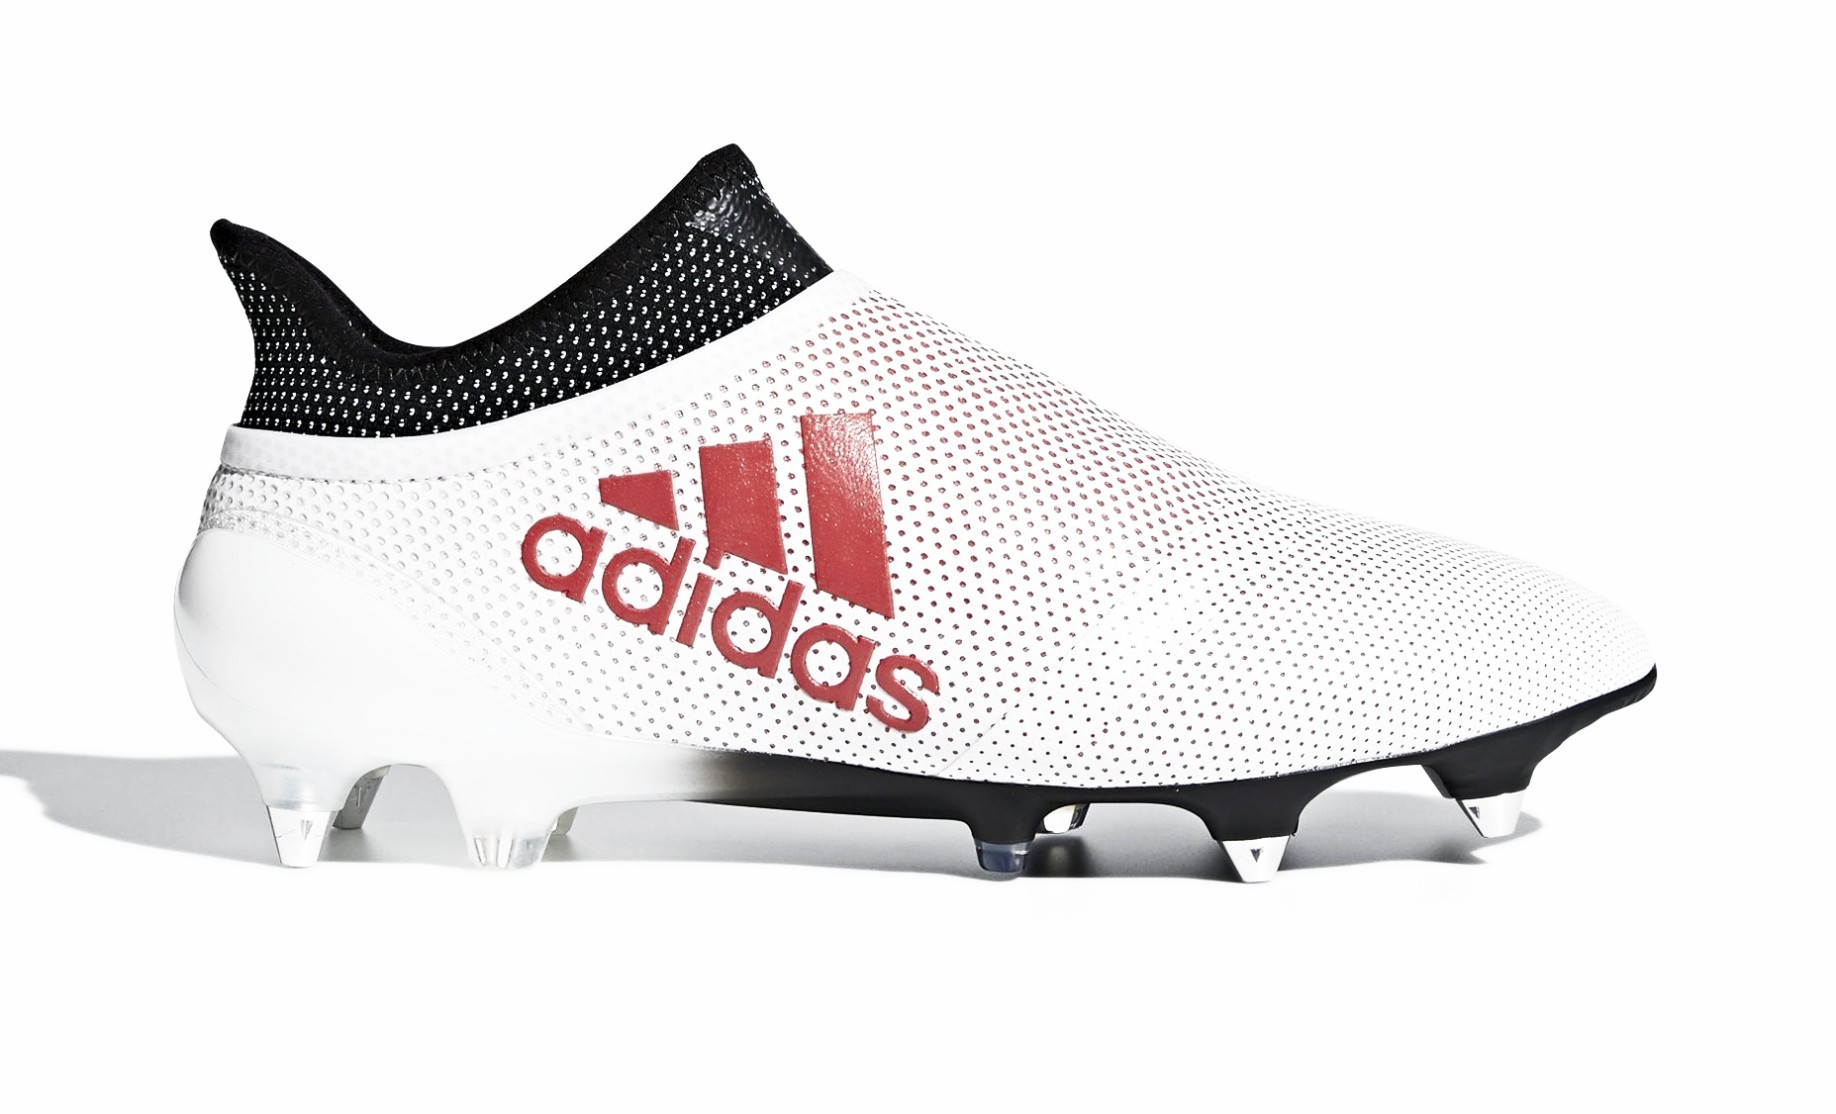 cdc1e9808715 Adidas Football boots X 17+ SG Cold Blooded Pack colore Grey - Adidas -  SportIT.com